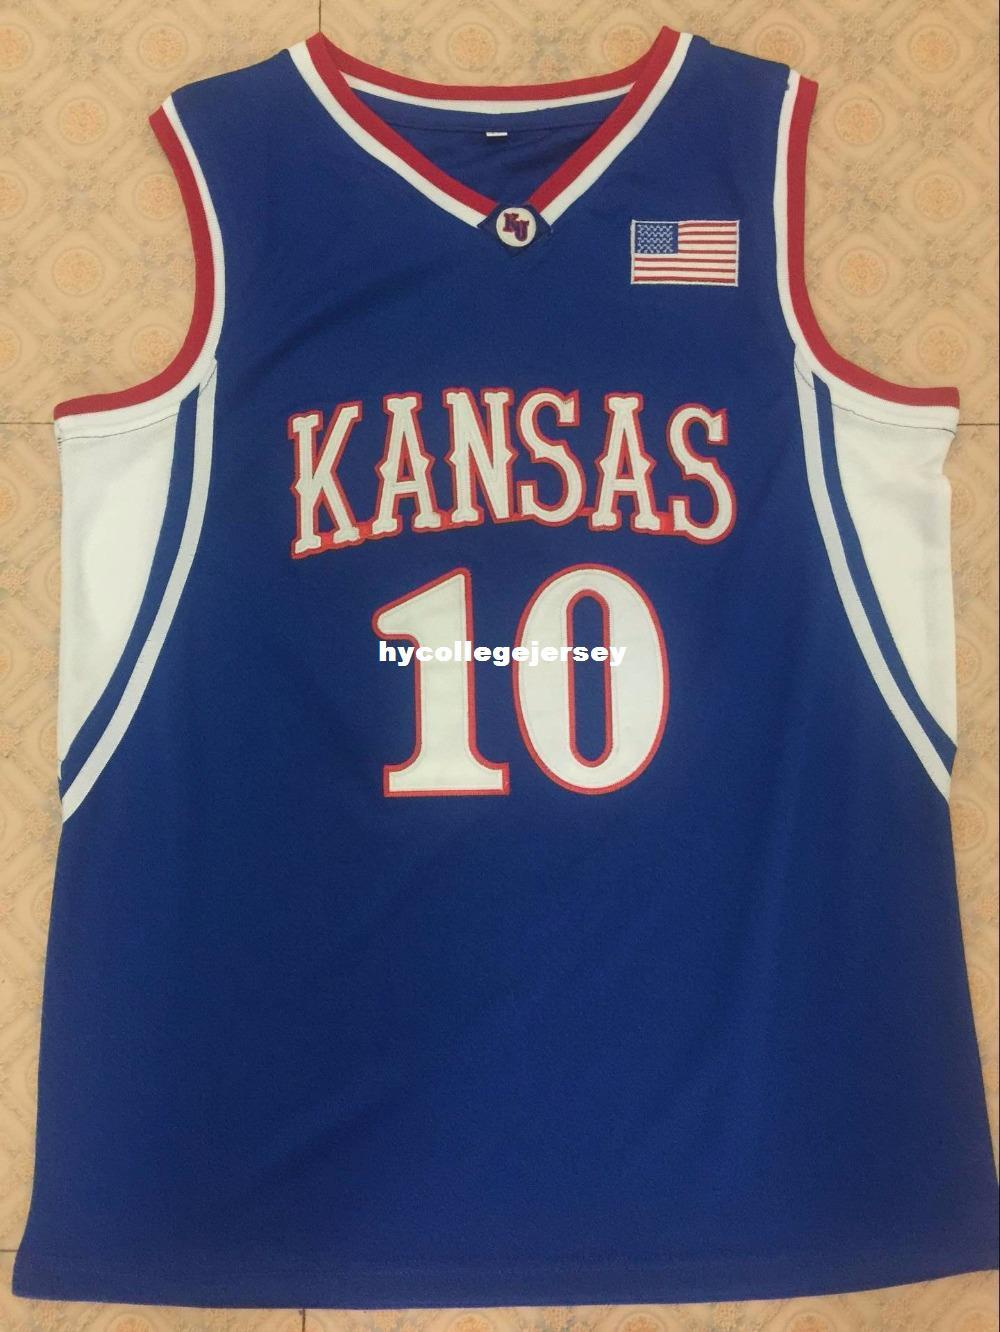 4c19d3f9b27 03-04  10 KIRK HINRICH Topps Mark Of Excellence Auto Kansas Jayhawks  Basketball Jersey Customize Any Number And Name S-6XL Vest Jerseys Ncaa  Cheap ...